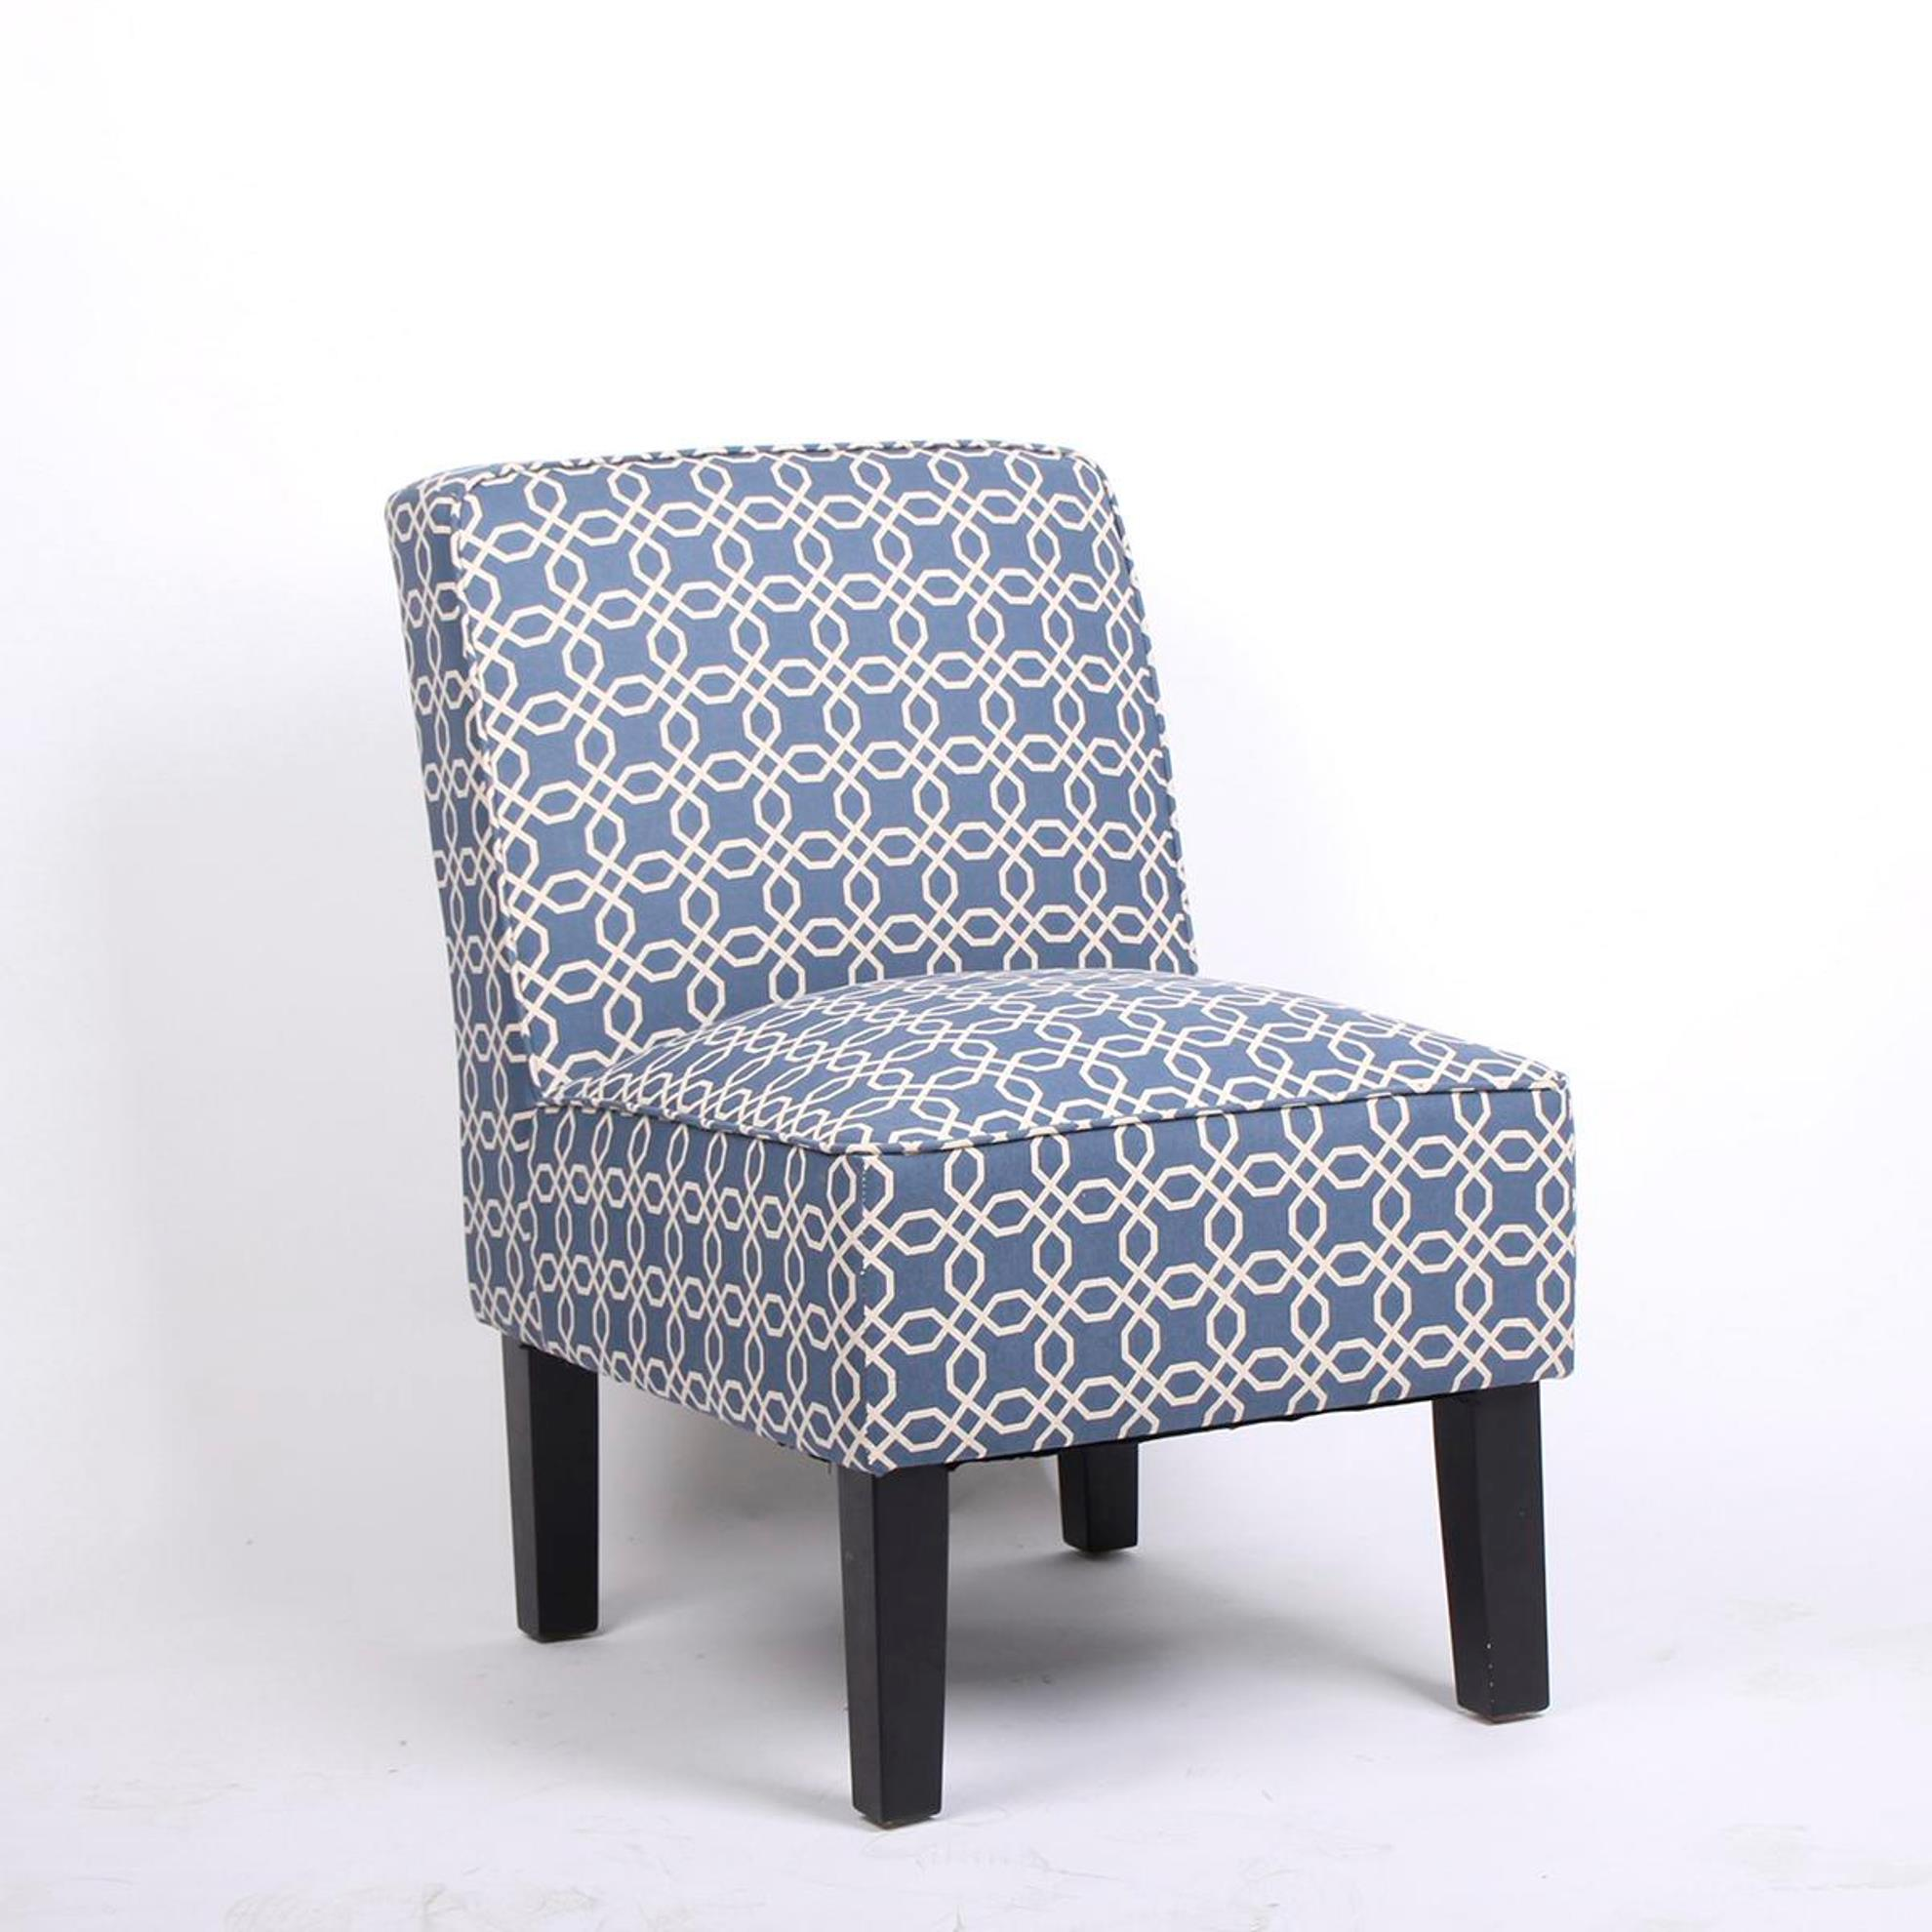 bedroom chairs patterned slipper chair MXRBTWS